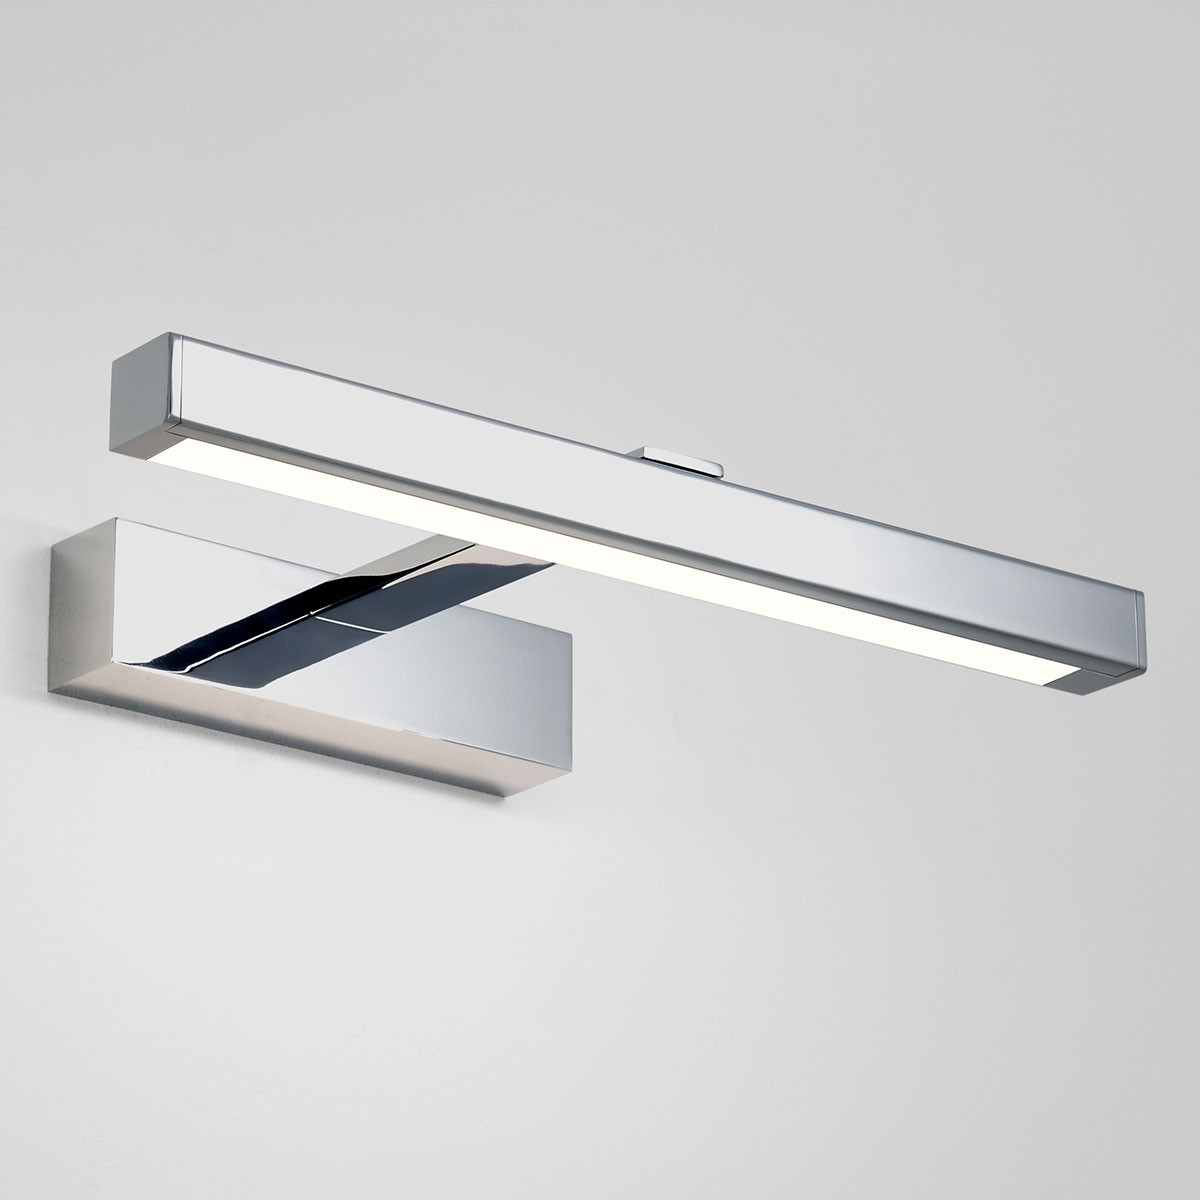 Led Bathroom Wall Lights Uk: Astro Kashima 350 Polished Chrome Bathroom LED Wall Light